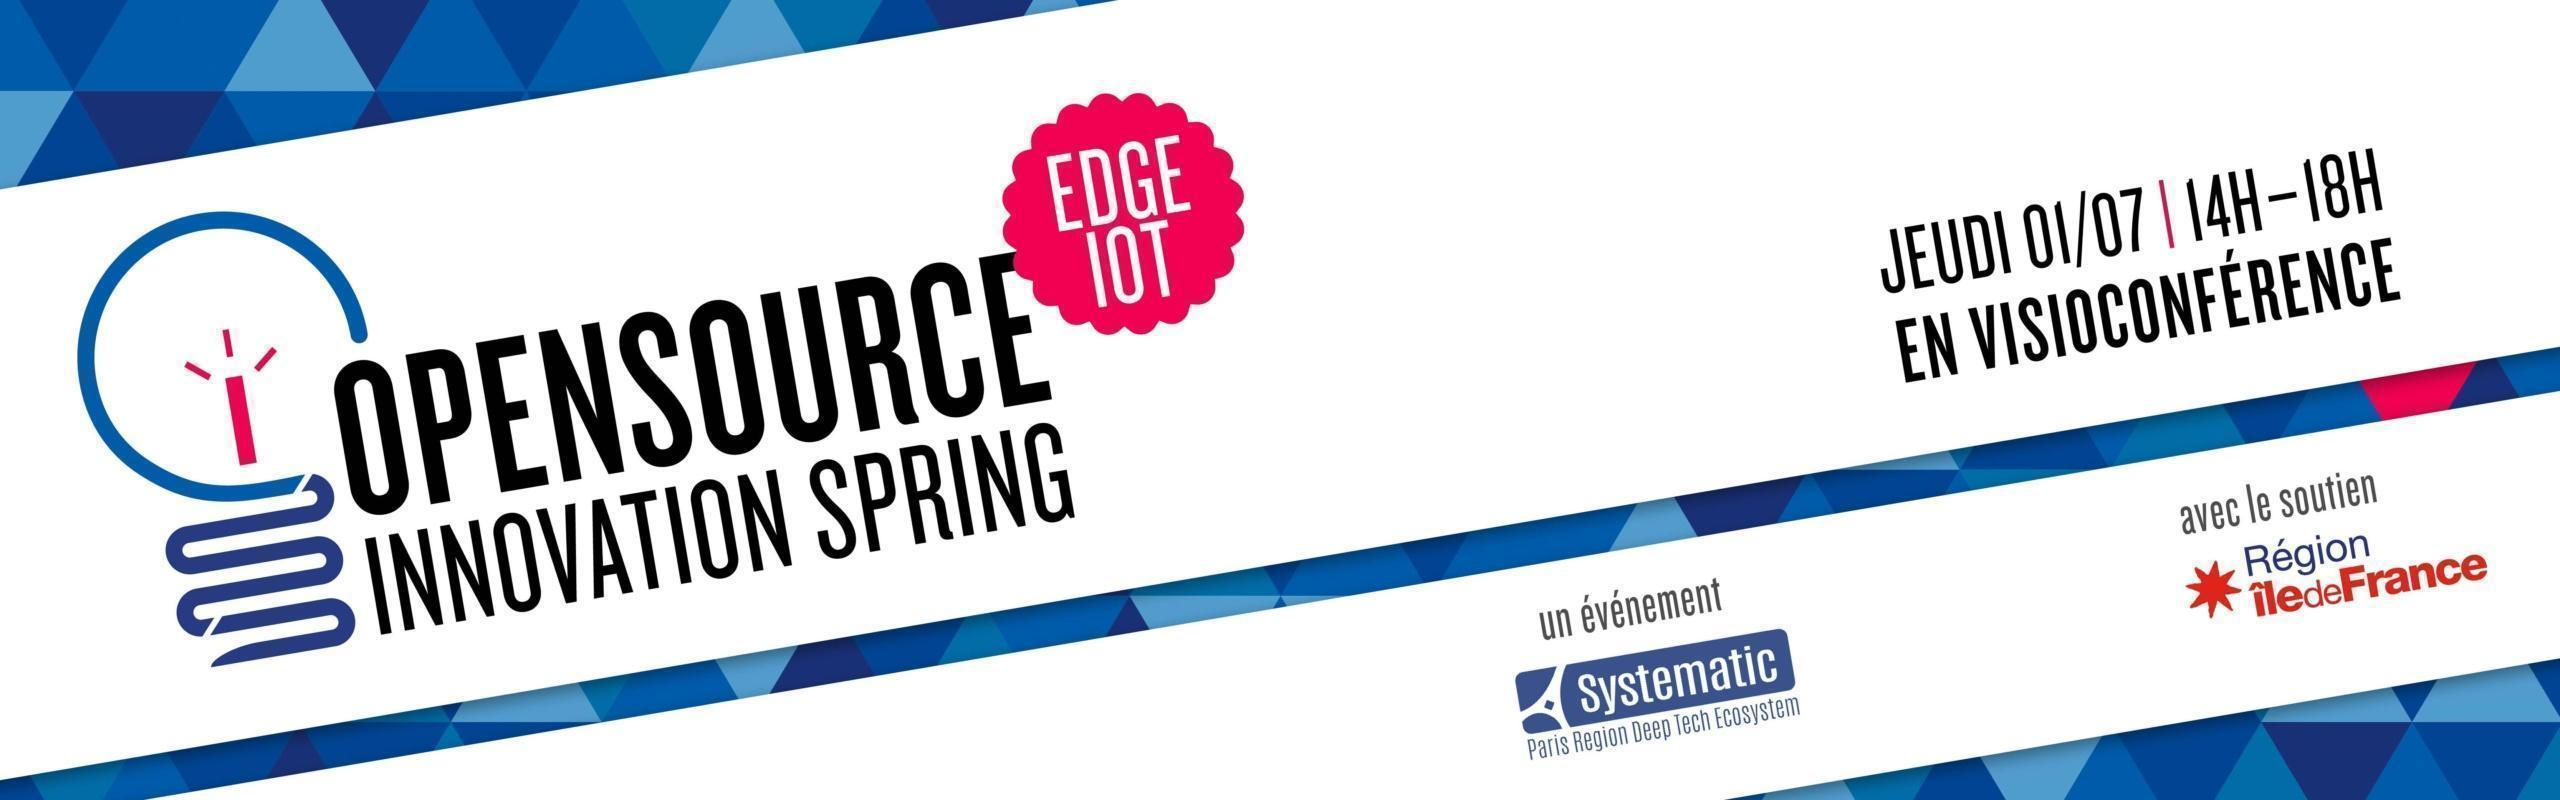 Open Source Innovation Spring – Edge, IoT